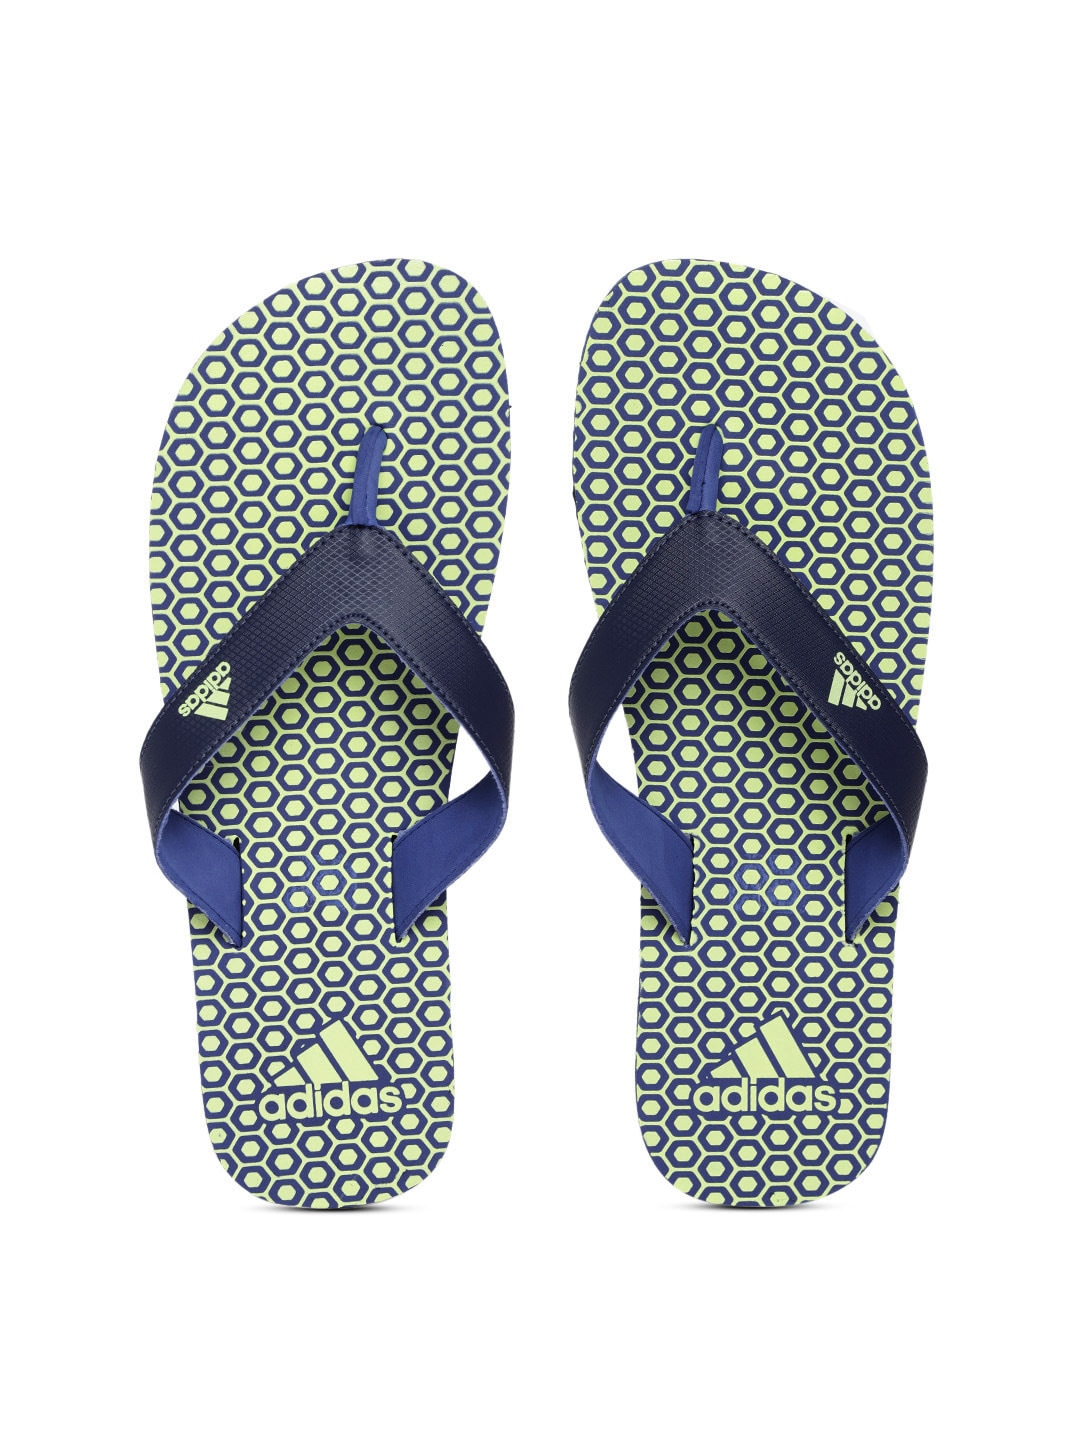 d645d887fac Adidas Slippers - Buy Adidas Slipper   Flip Flops Online India